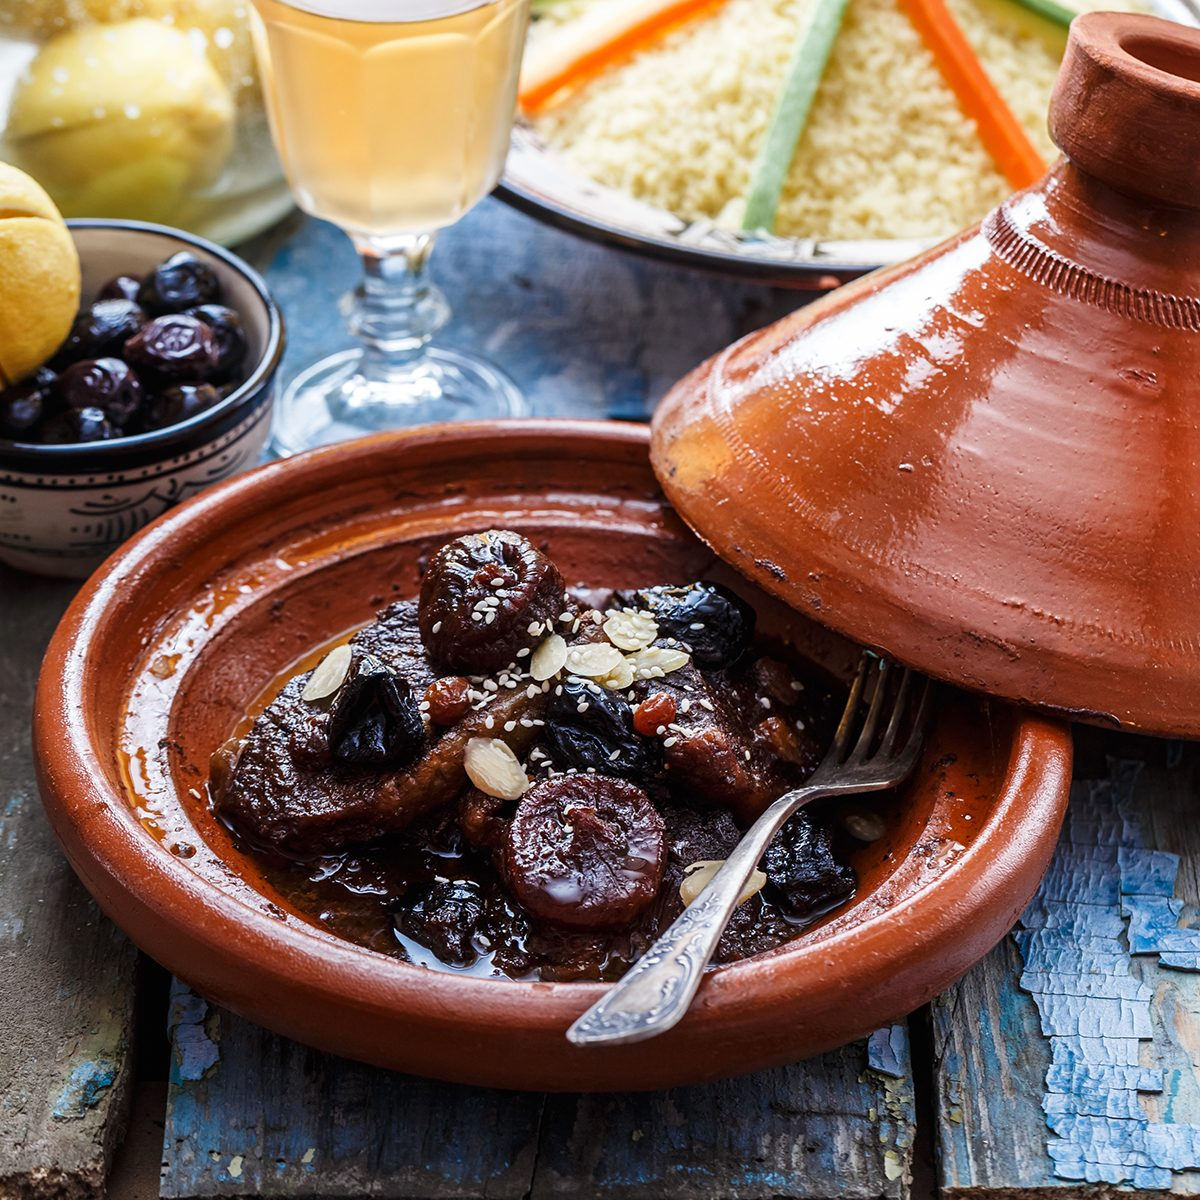 Slow cooked beef with prunes, figs, raisins and almonds - moroccan tajine.